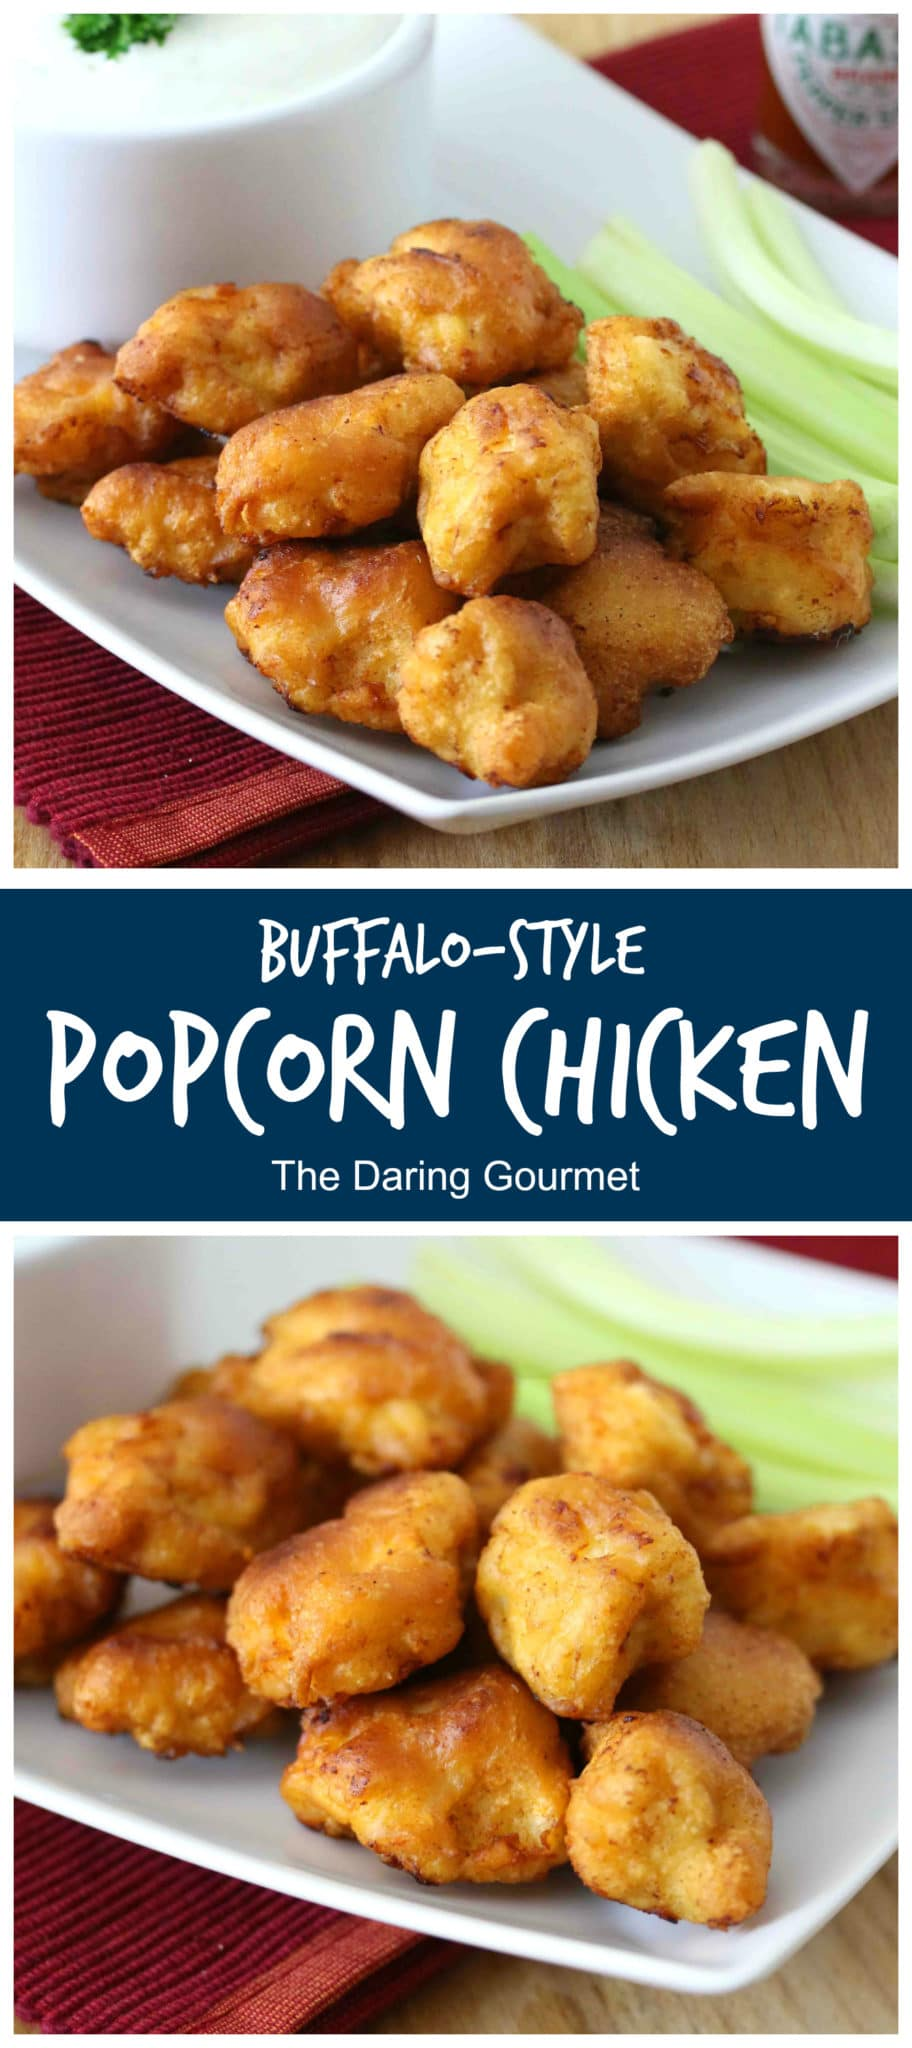 popcorn chicken recipe buffalo style hot spicy blue cheese dressing